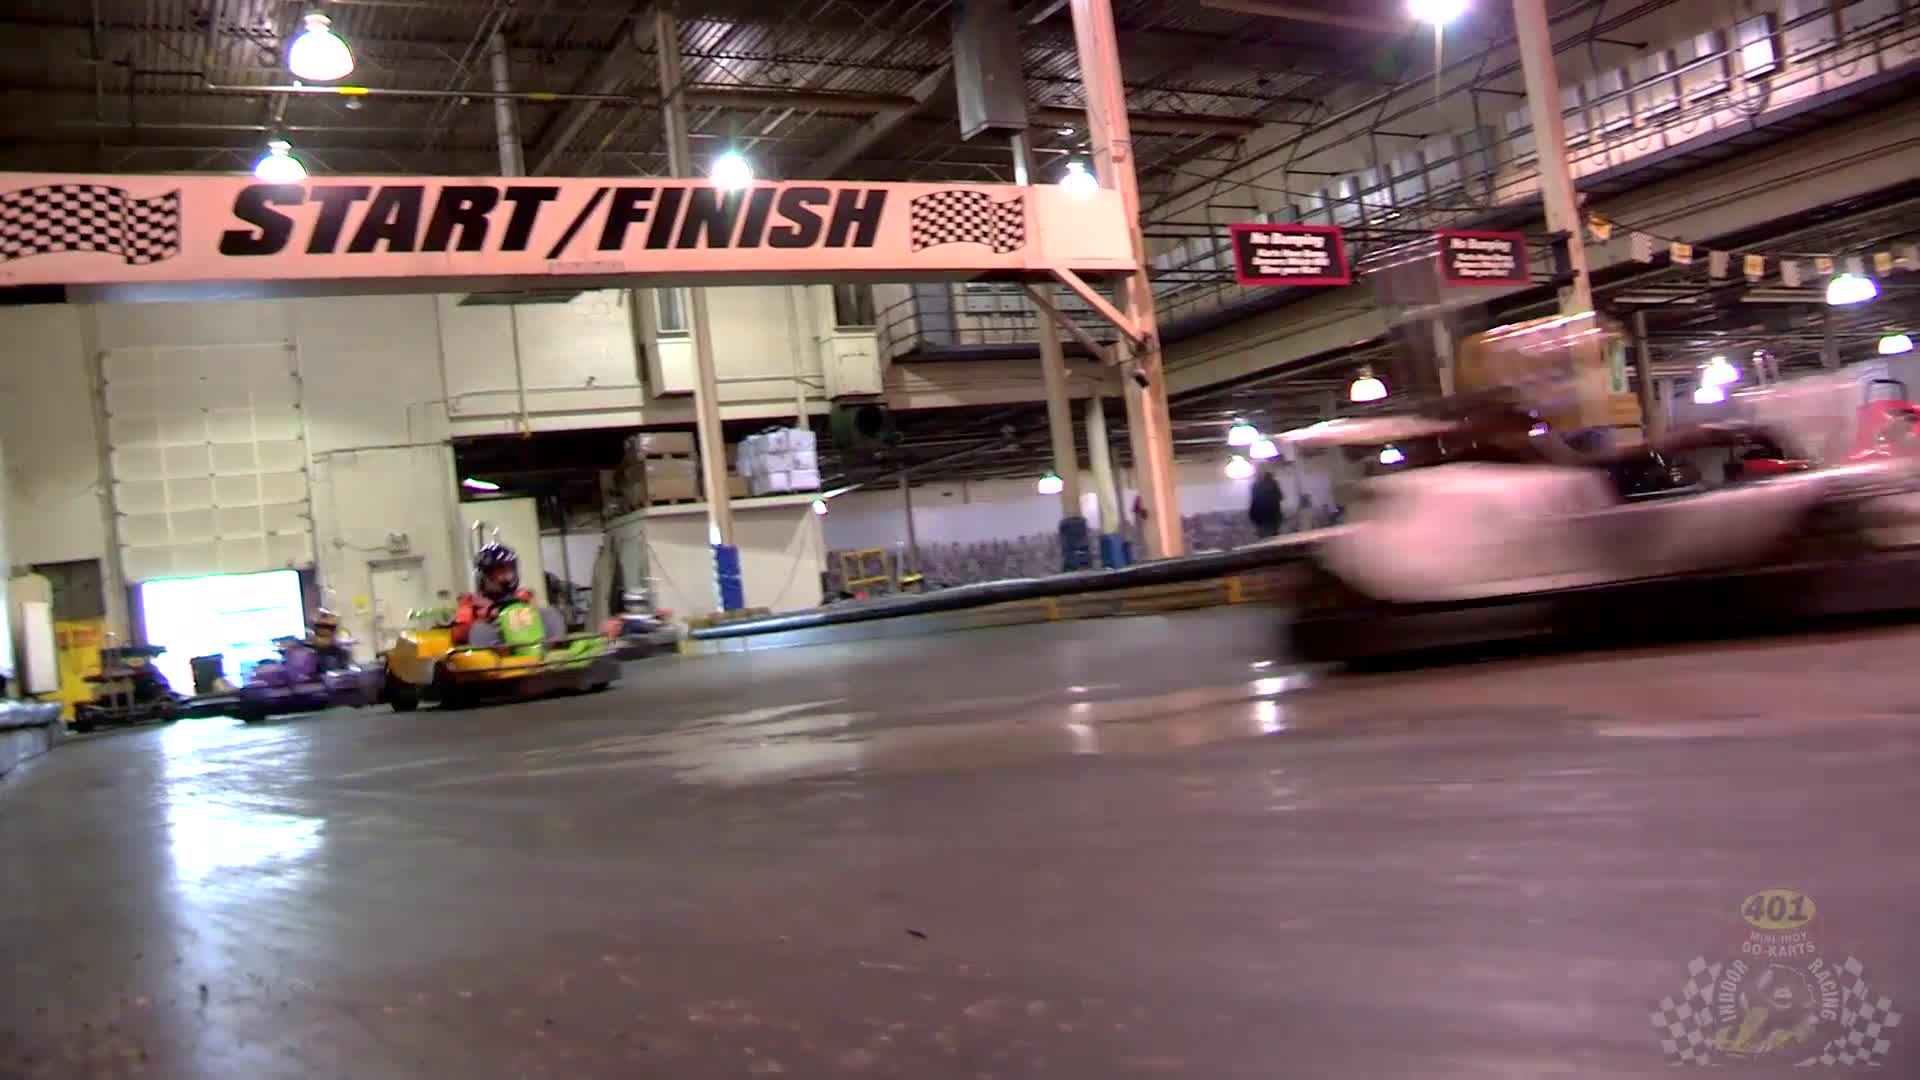 401 Mini-Indy Go-Karts - Go-karts & Karting Tracks - 416-614-6789